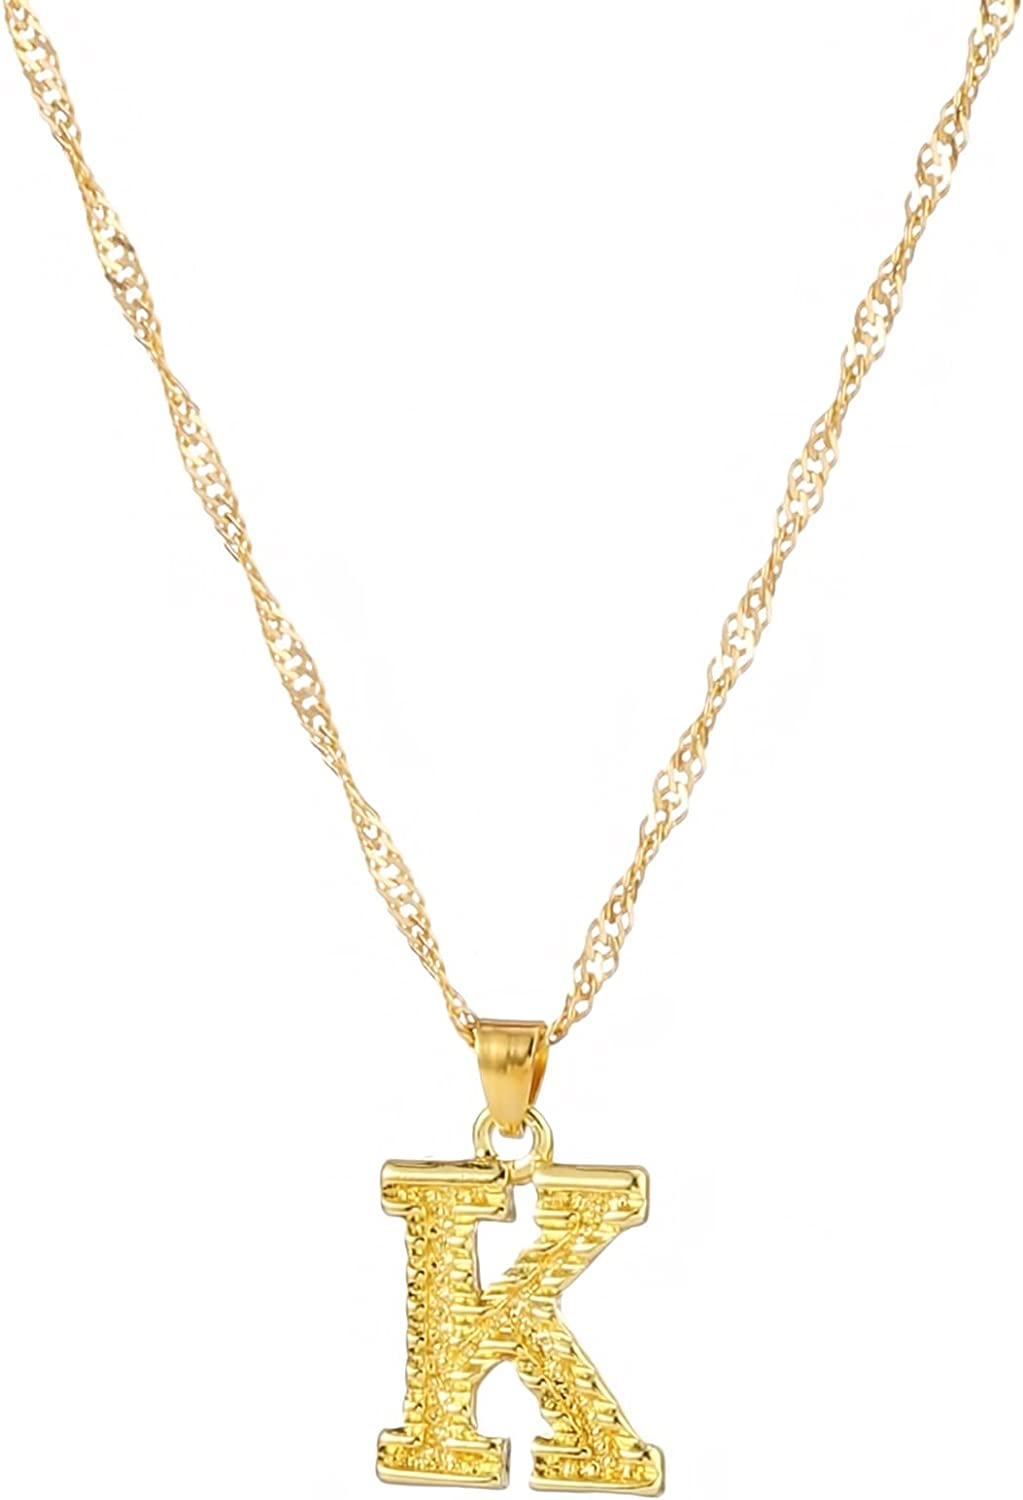 GOMYIE Big Letter Necklace Alloy Initial Pendant Best Friends Jewelry For Birthday Christmas Gifts